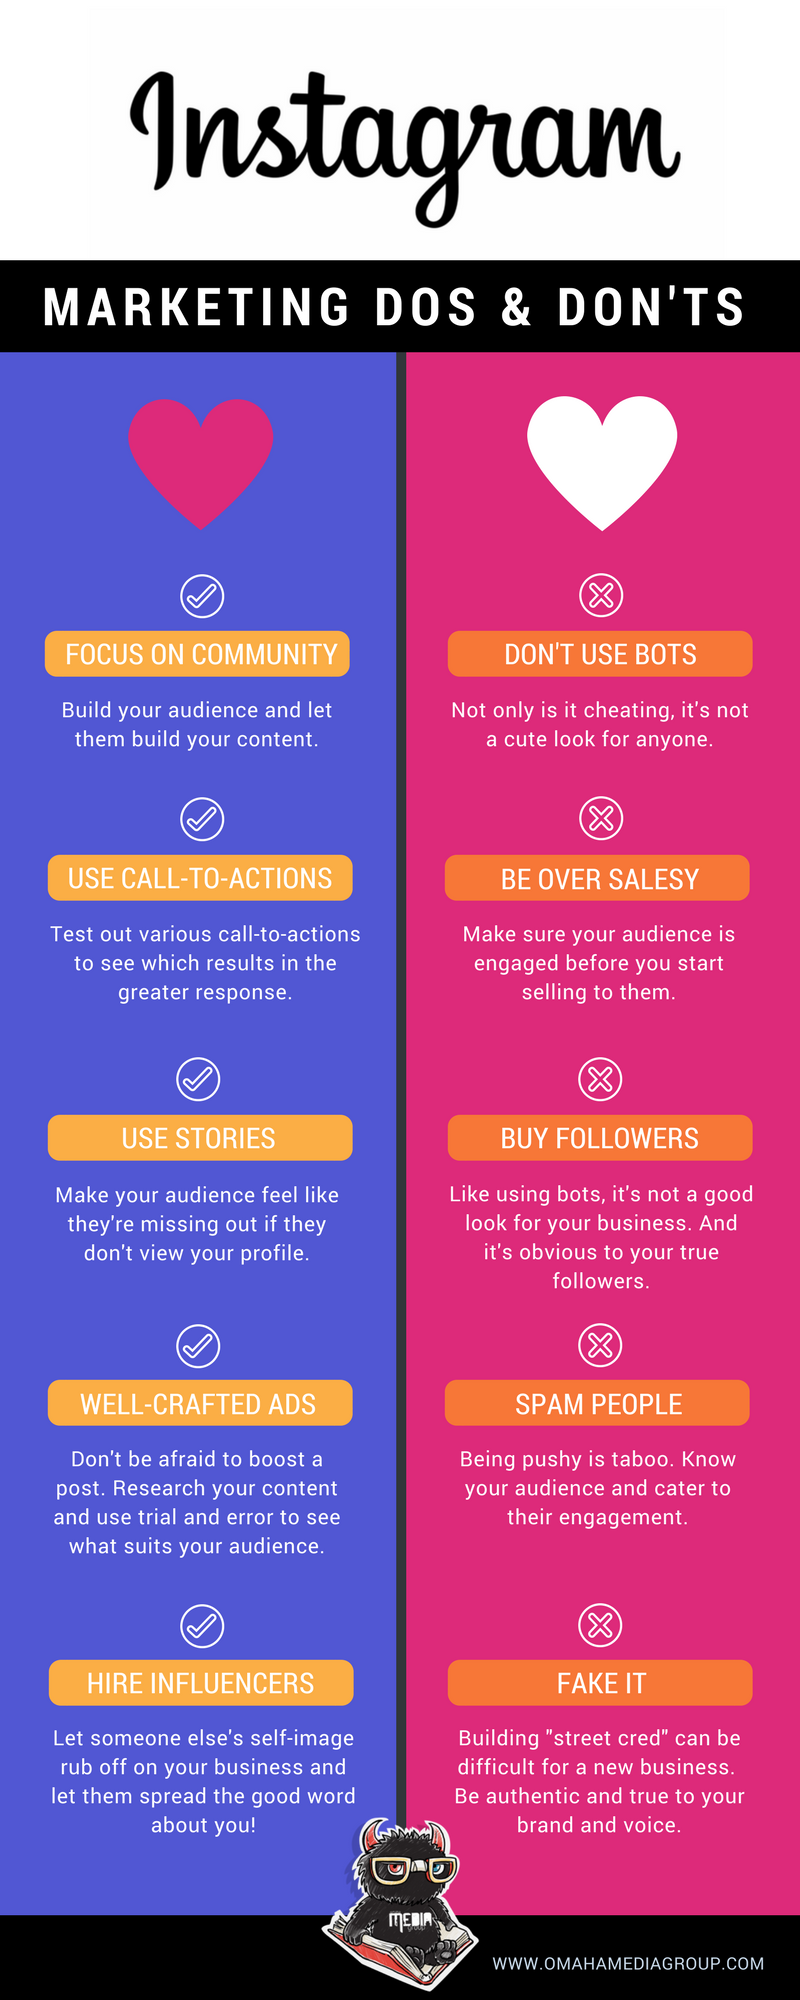 Instagram Marketing Dos and Don'ts